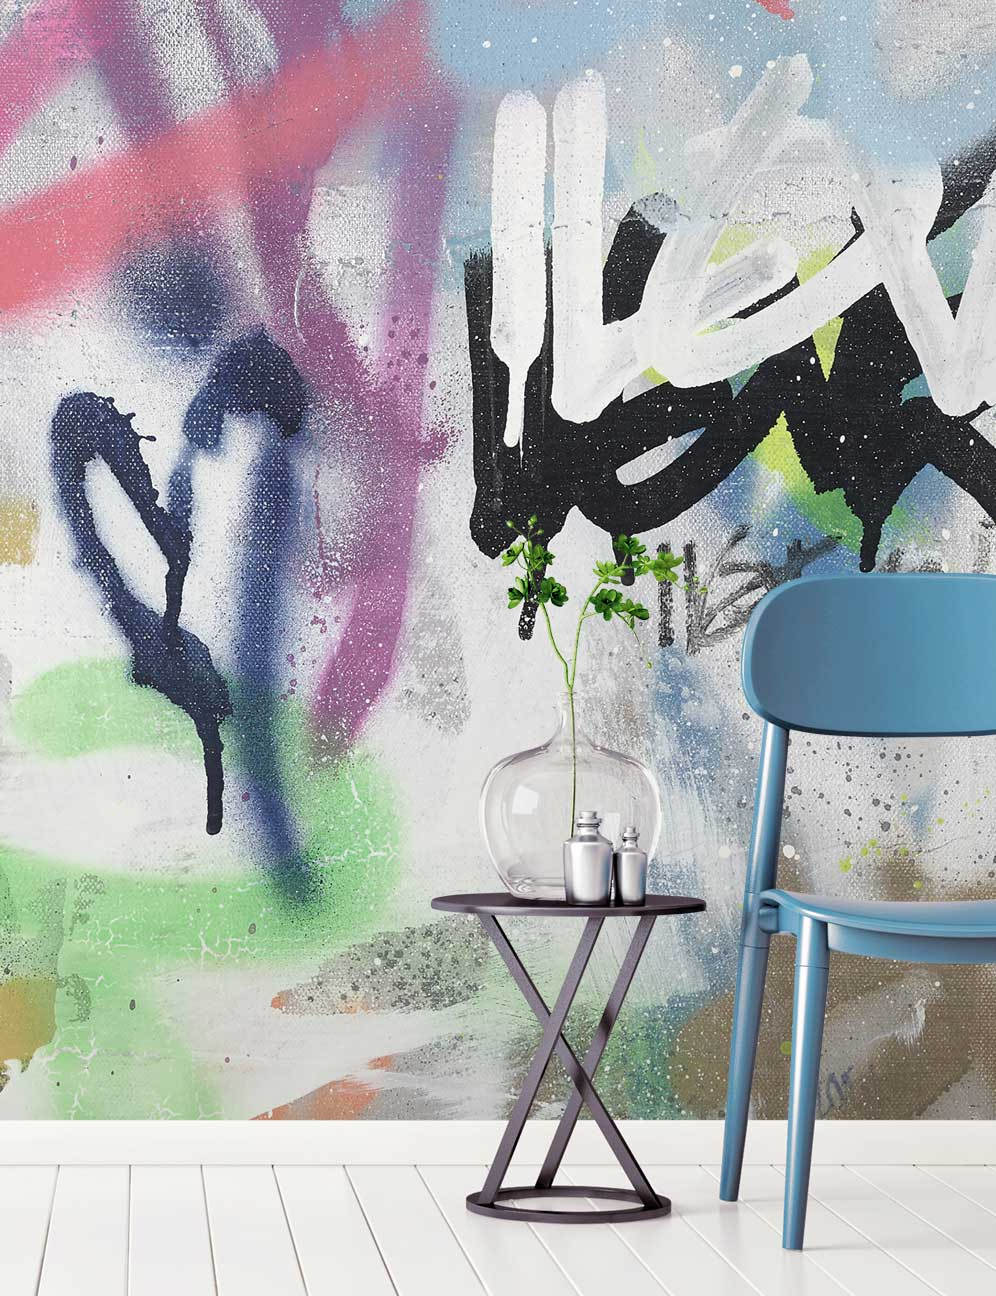 Graffiti Wallpaper To Give Your Home An Urban Edge Feathr